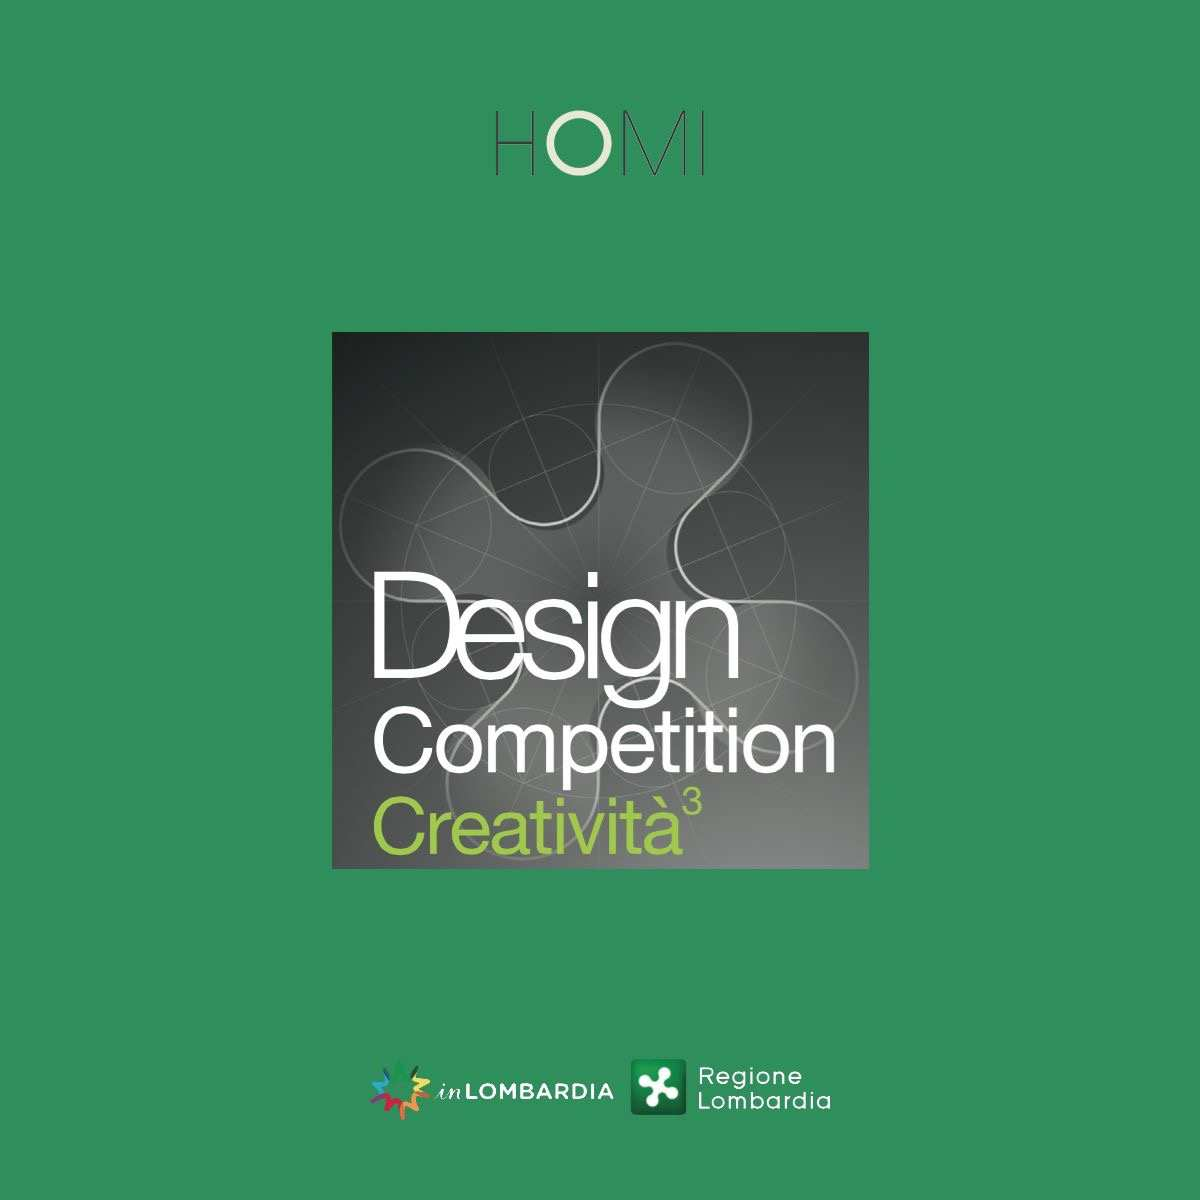 homi-design-competition